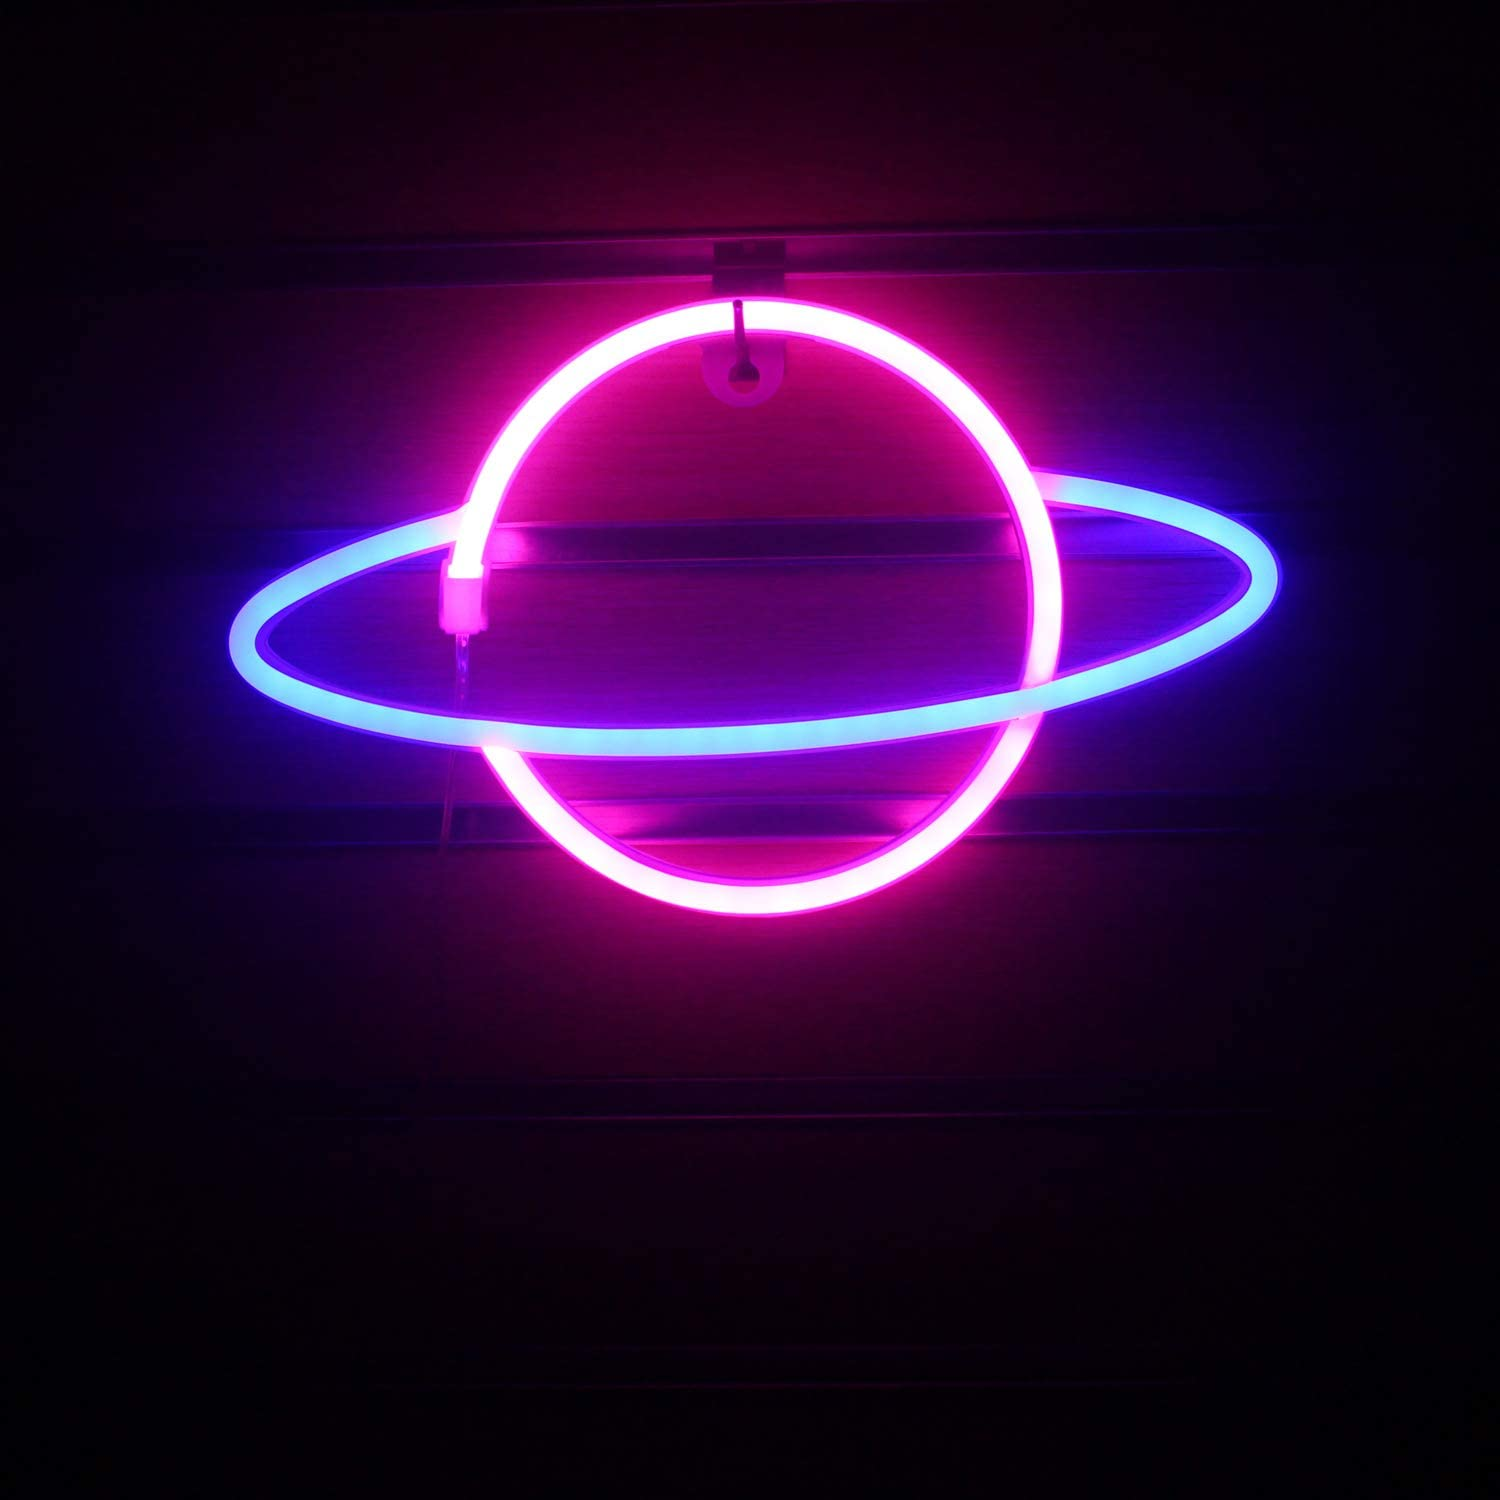 Amazon Com Wanxing Planet Neon Signs Led Neon Wall Sign Pink Blue Neon Lights For Bedroom Kids Room Hotel Shop Restaurant Game Office Wall Art Decoration Sign Party Supply Gift Pink Blue Home